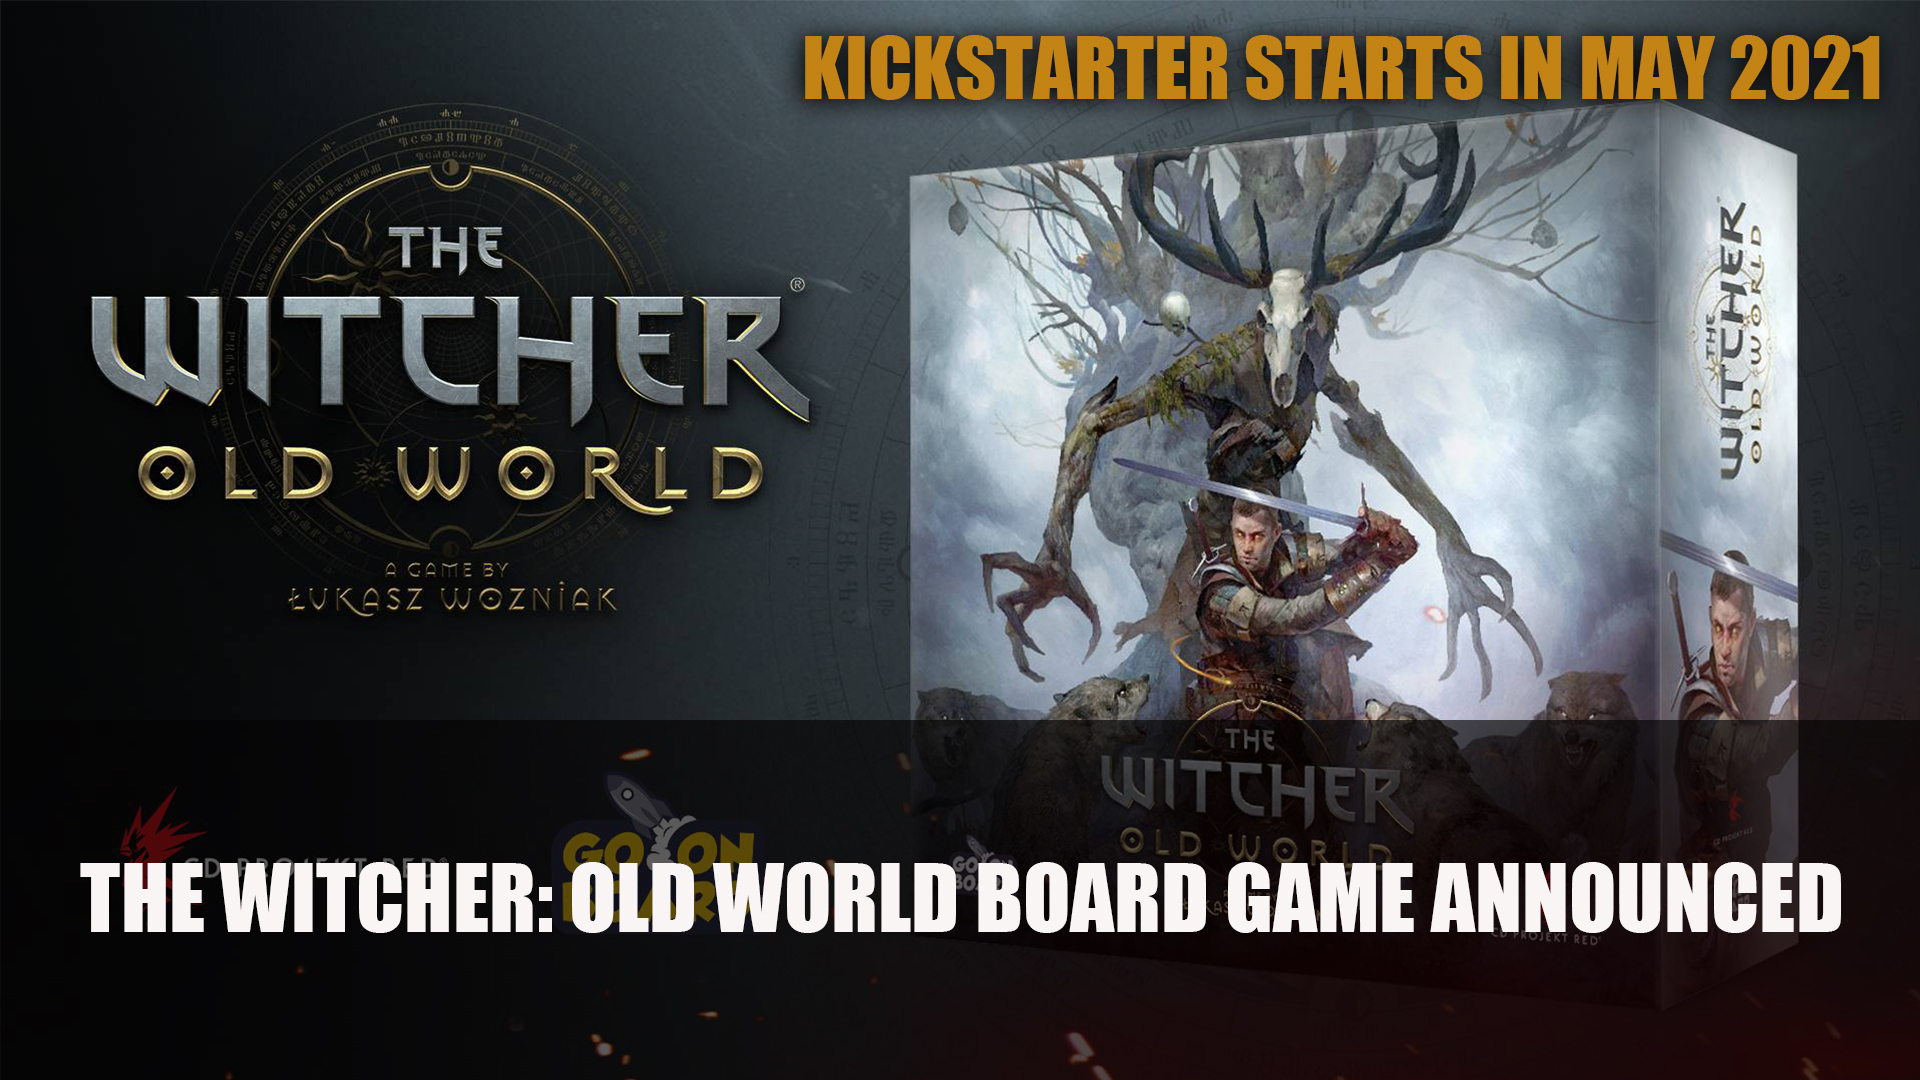 The Witcher: Old World Kickstarter starts in May Board Game